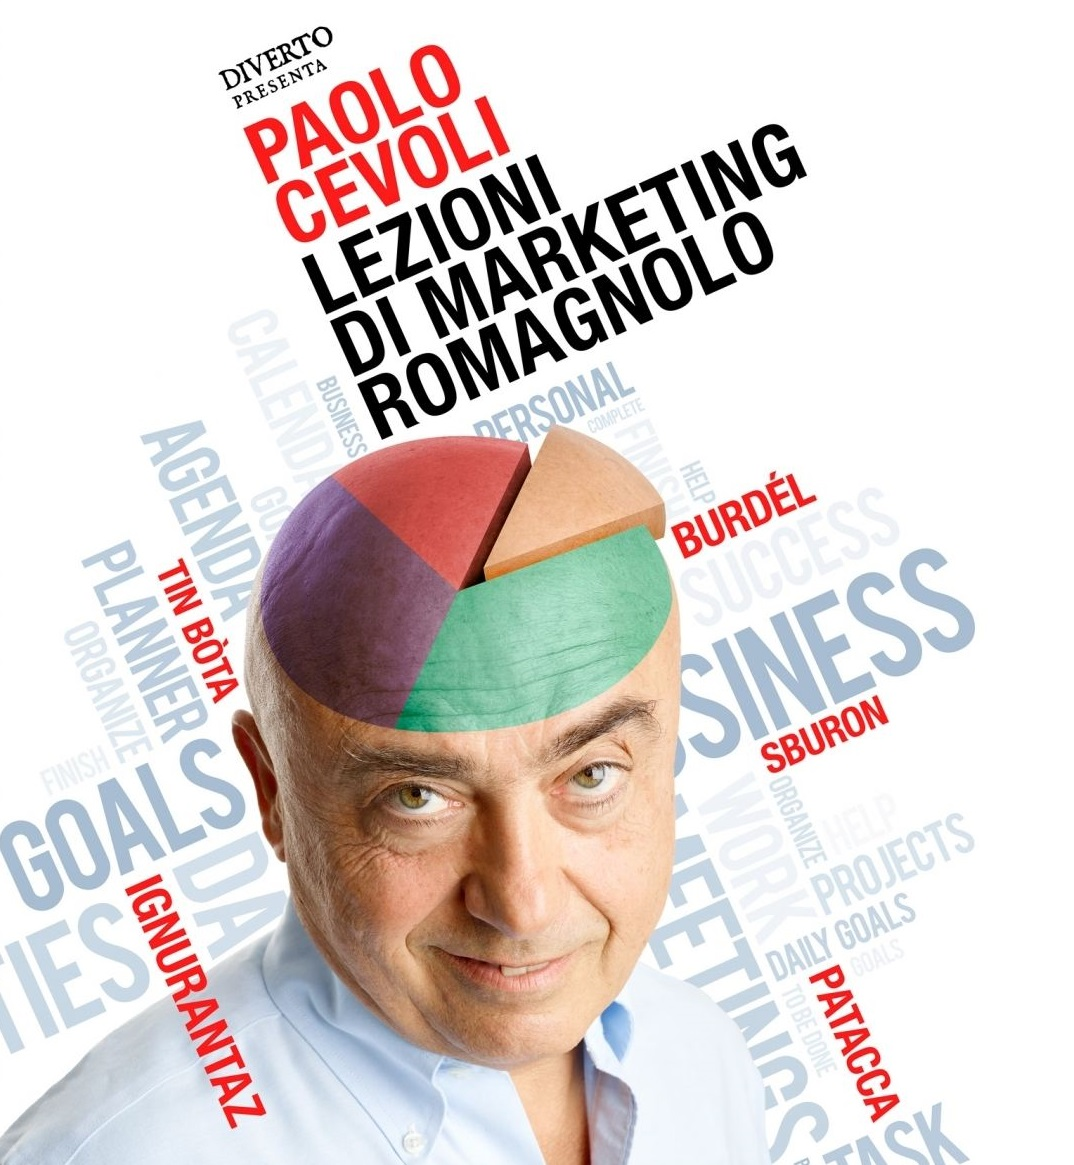 """Lezioni di marketing romagnolo"" di Paolo Cevoli: i valori di Sboronaggine, Ignorantezza e Patacchismo"